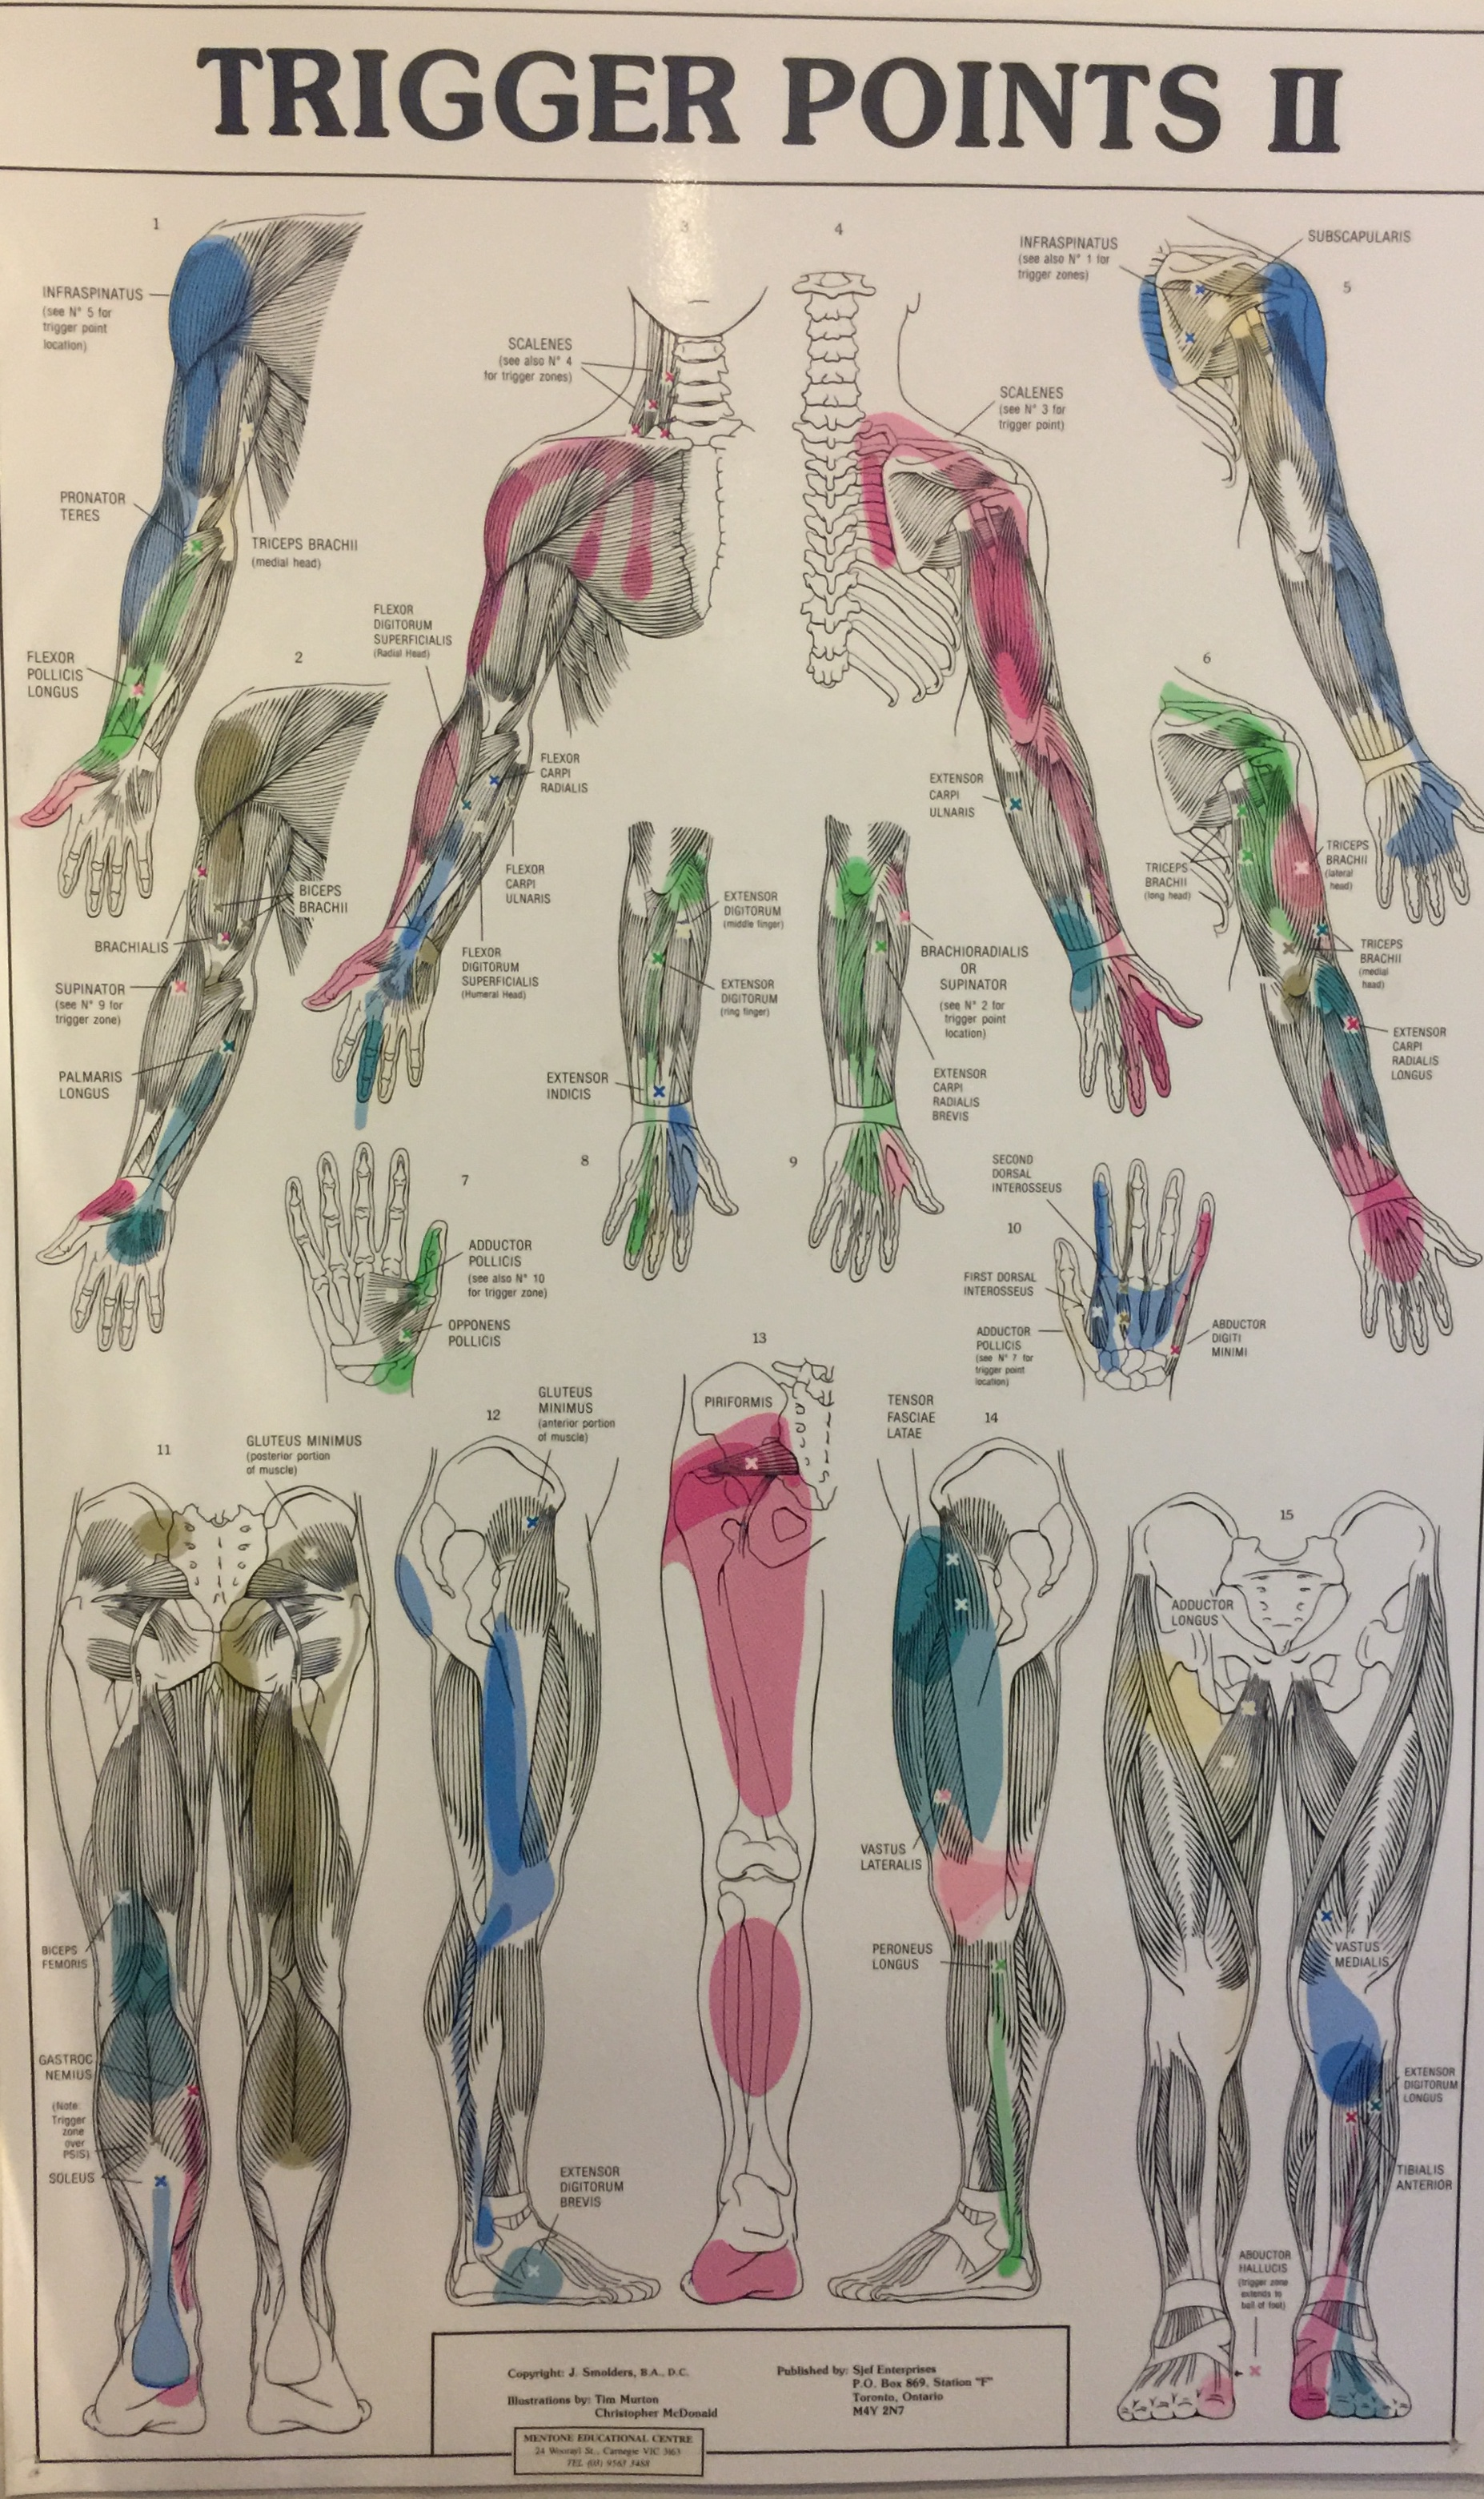 Trigger Points common in Colac